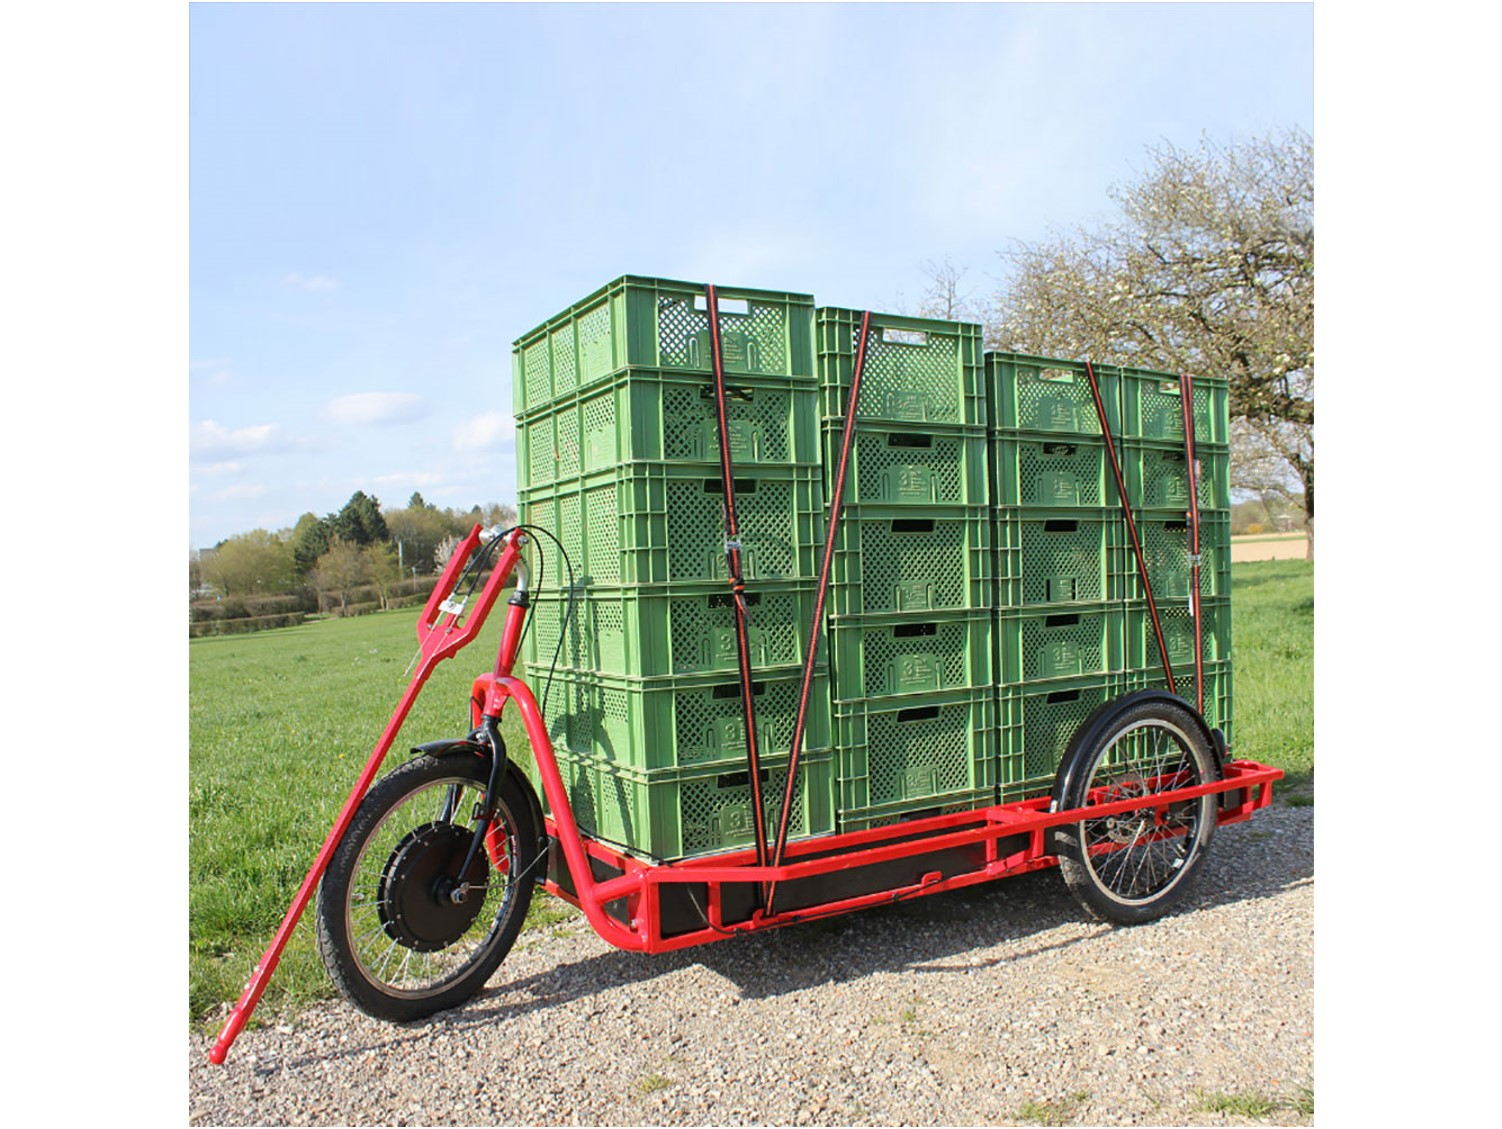 Carlacargo trailer Bike can hold up to 24 cases 600 x 400 mm. Insulate your crocodile crates with the cotton insert of COLD & CO to make your deliveries of fresh products.